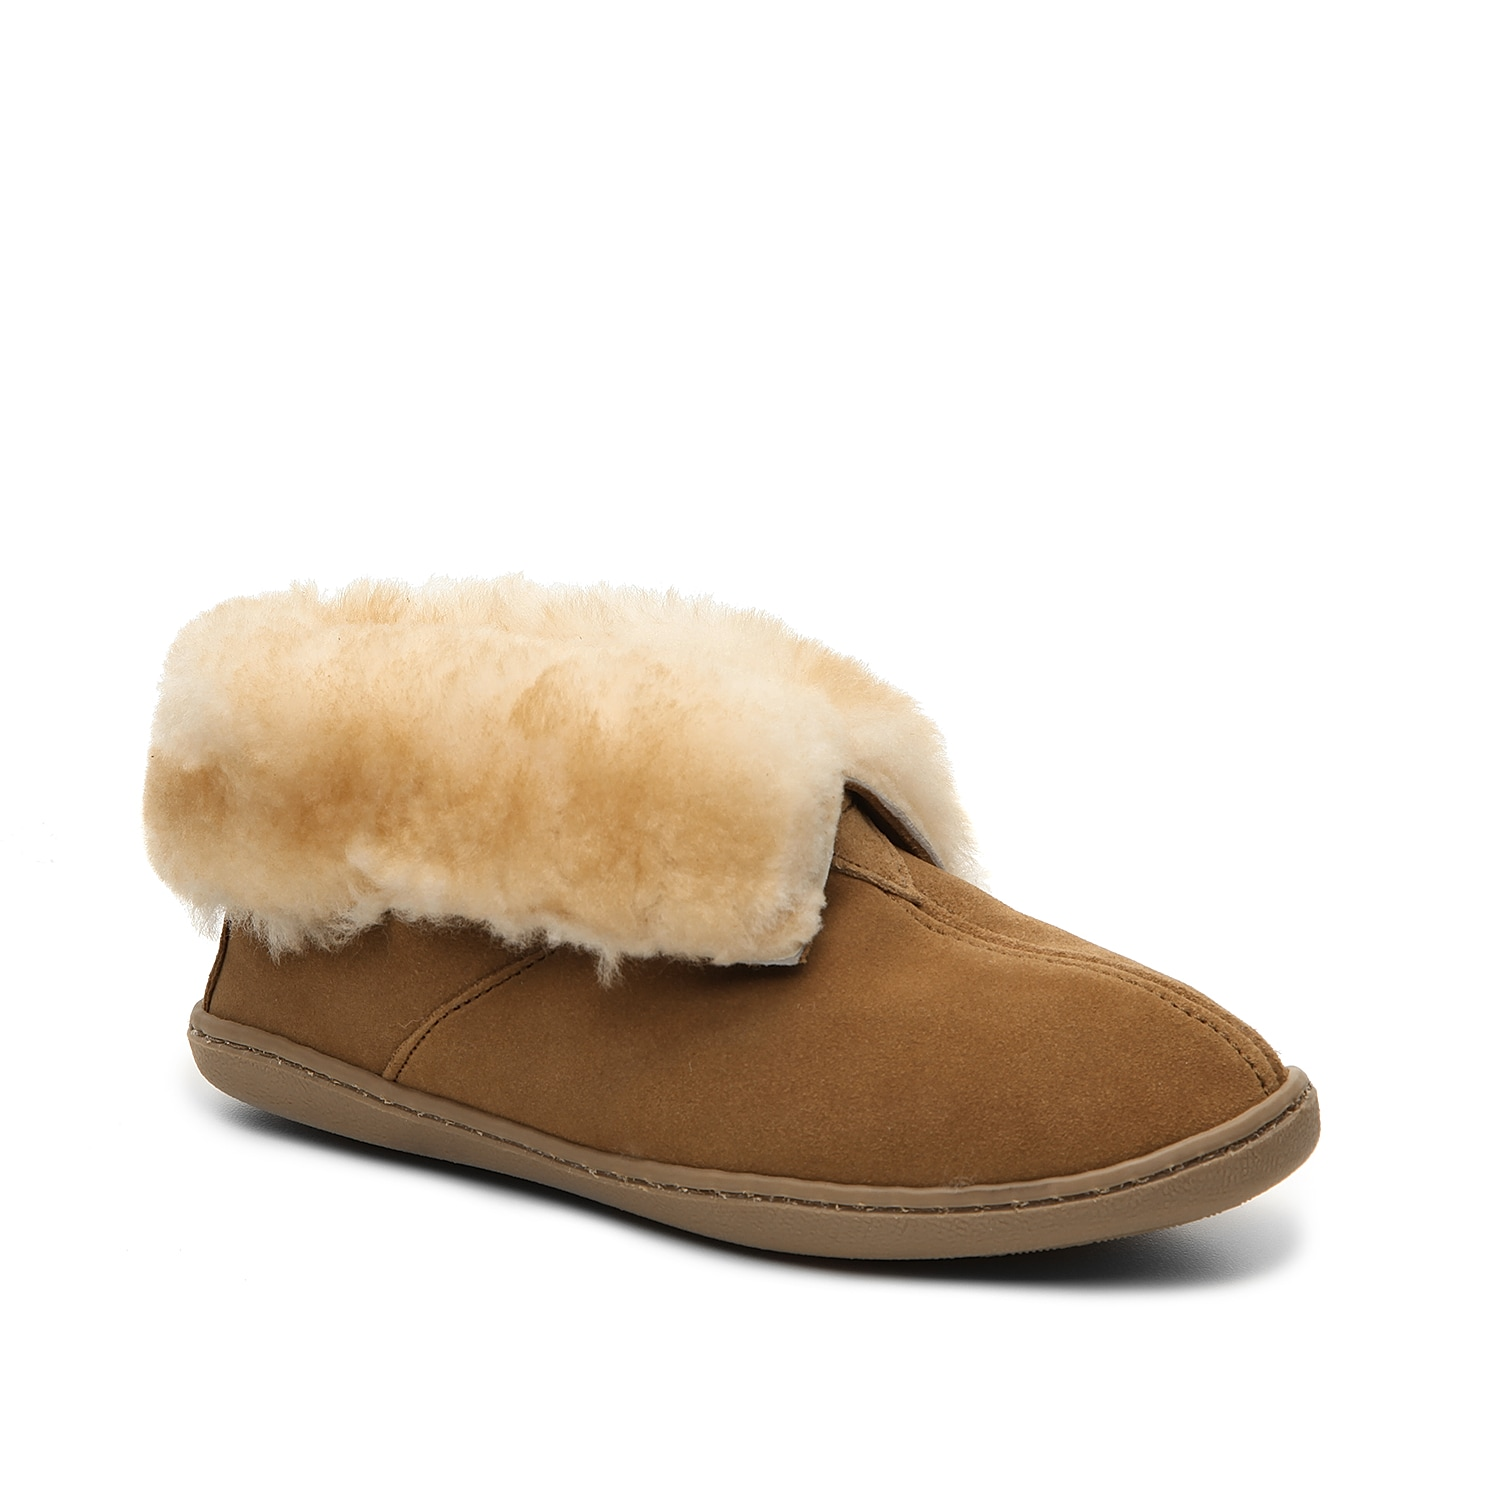 A soft fur lined ankle boot from Minnetonka is going to be your new best friend during these colder months ahead. Slip on these bootie slippers and cozy up with friends!